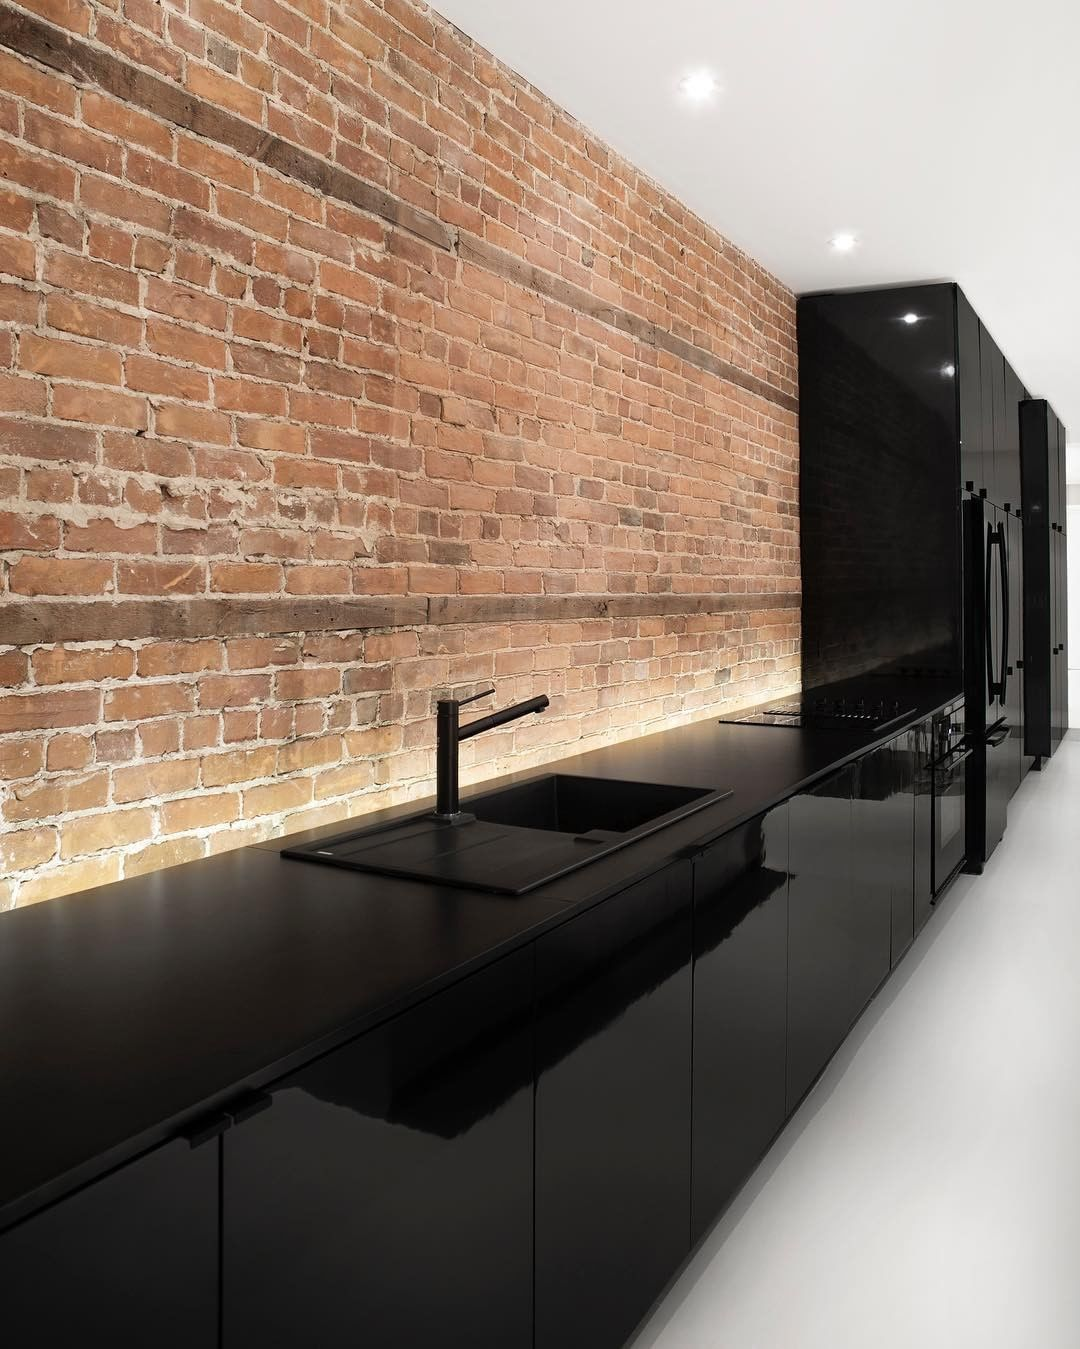 I Have Never Seen An All Black Kitchen Like This Before Honestly